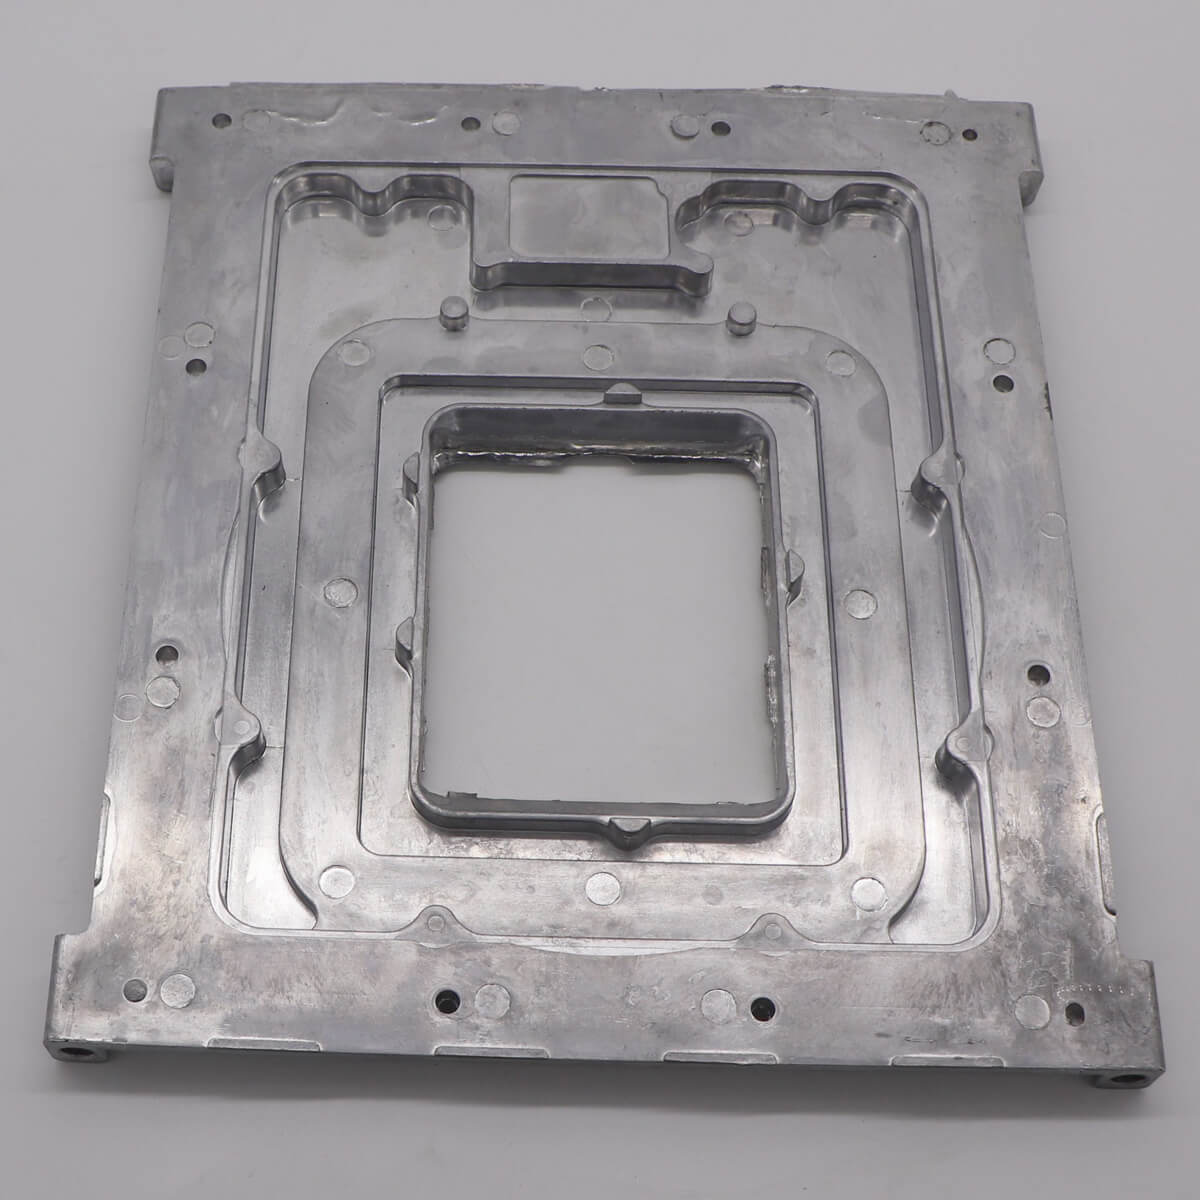 Xavier reasonable structure cnc milling parts front plate die casting-1